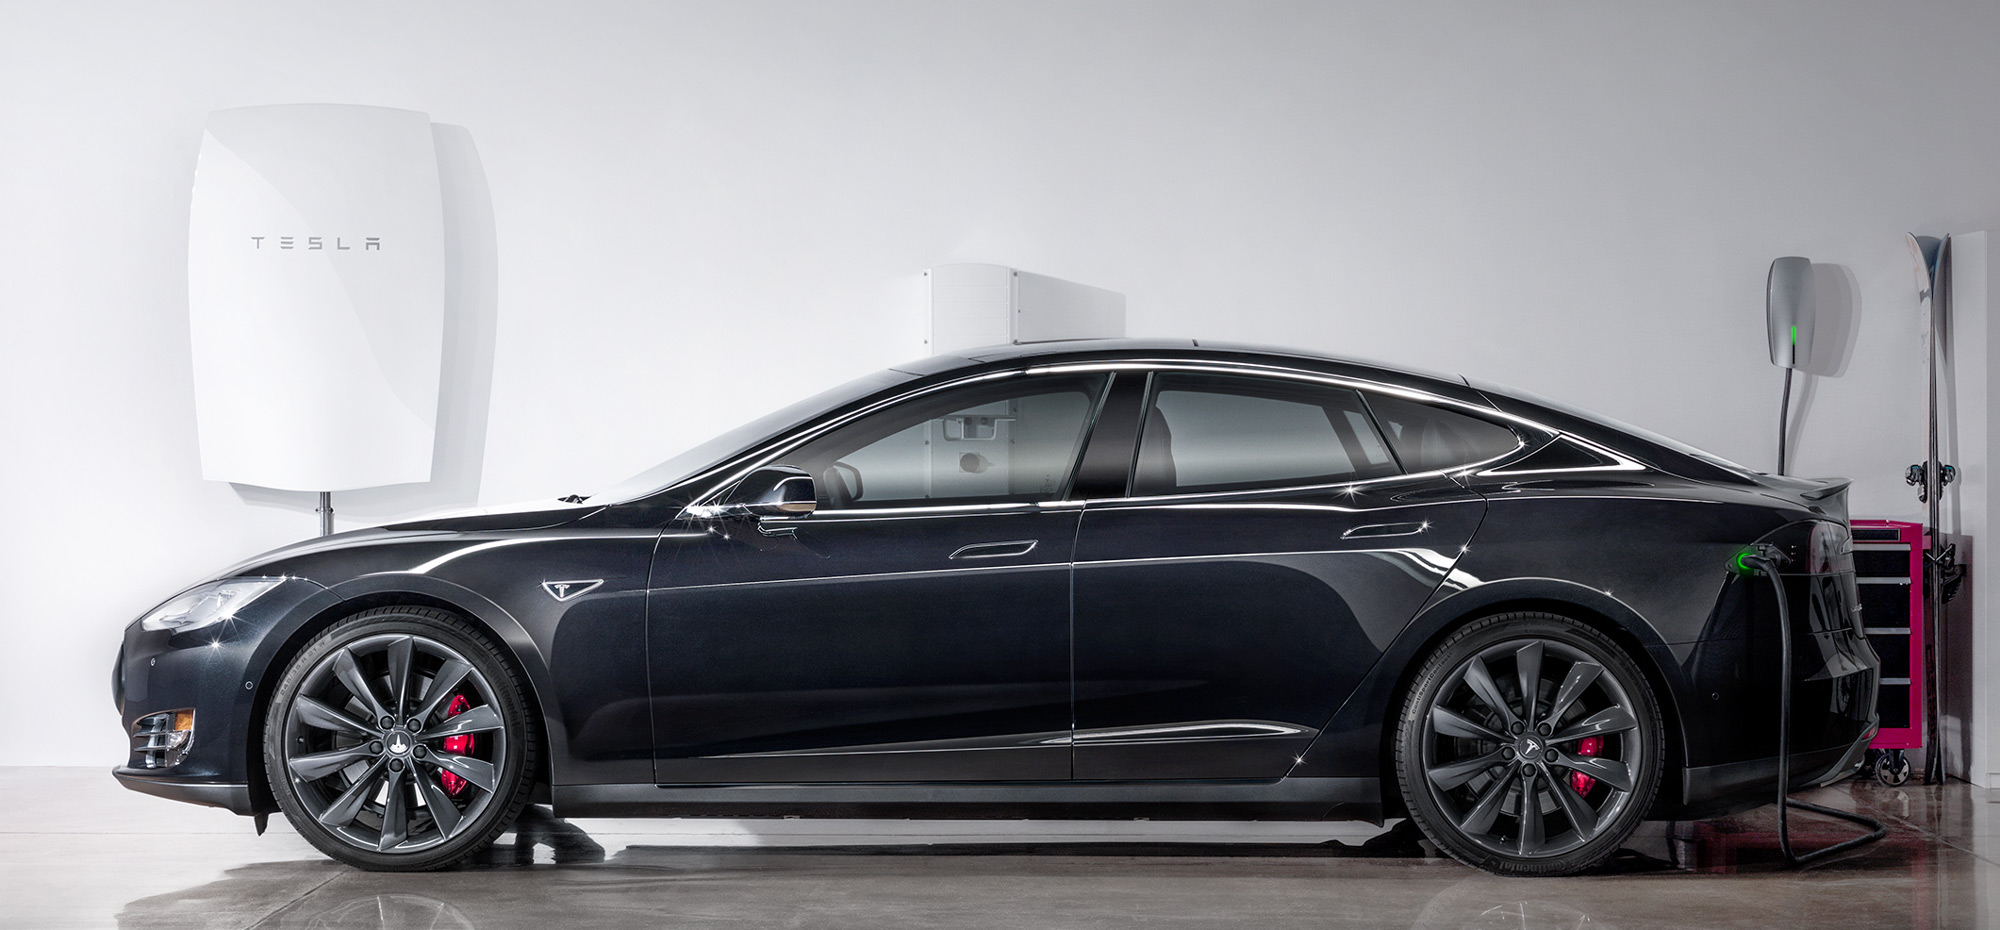 Tesla Motors Model S & Tesla Energy Powerwall